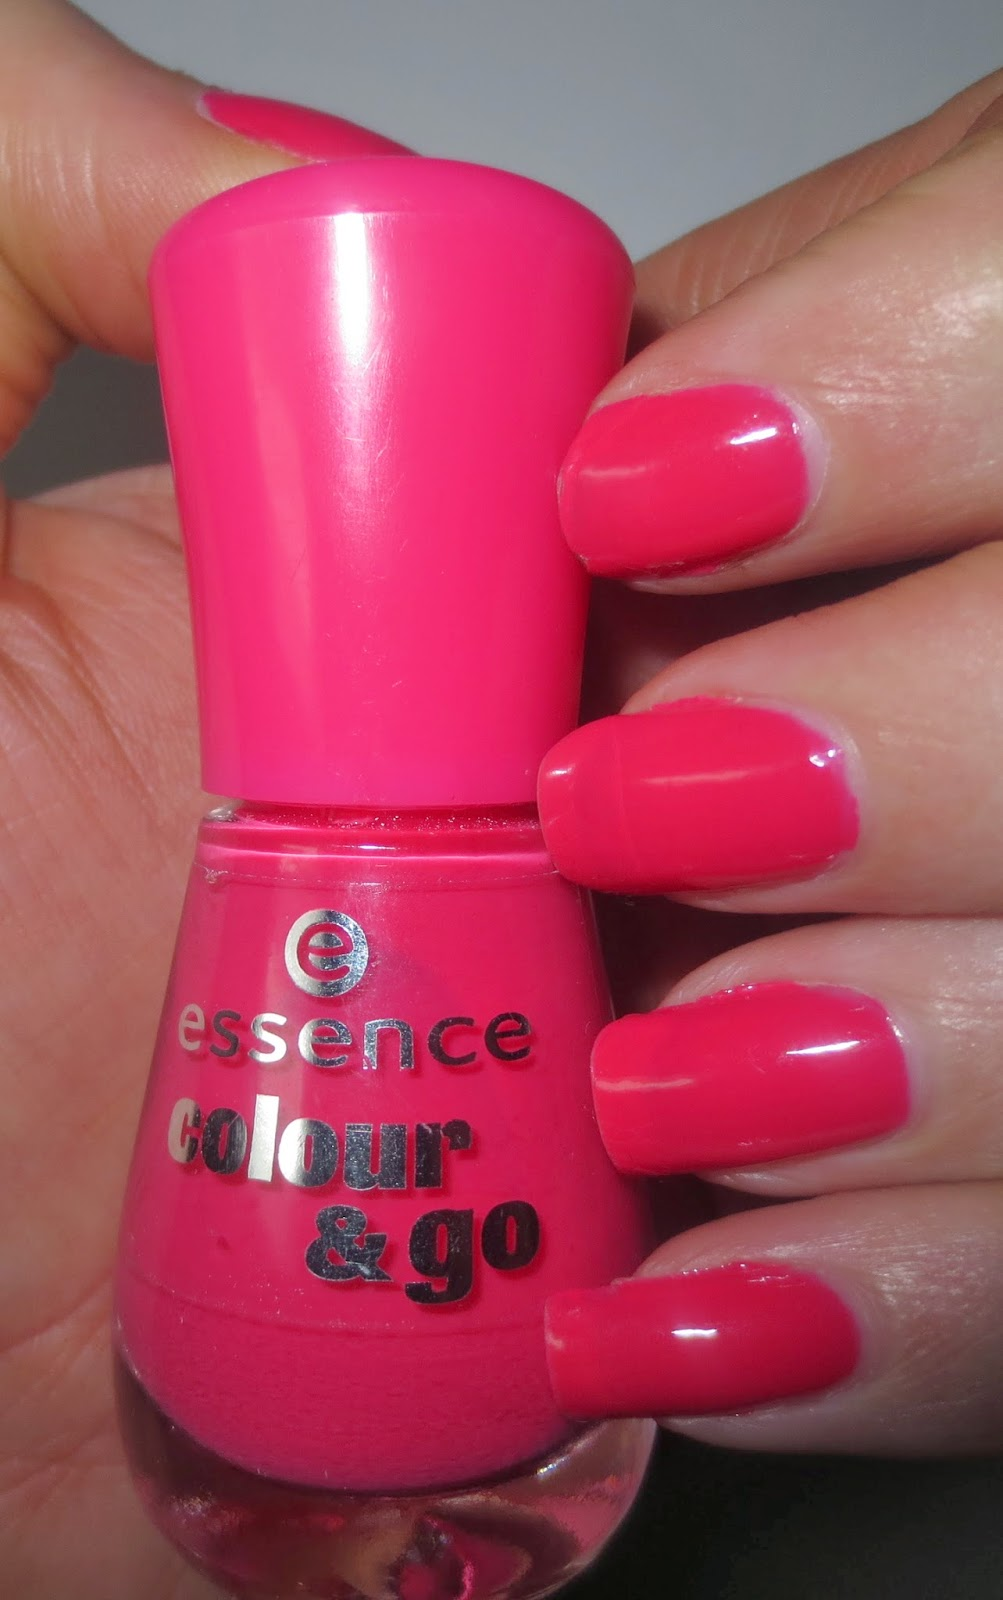 essence colour & go nail polish - naughty and pink!